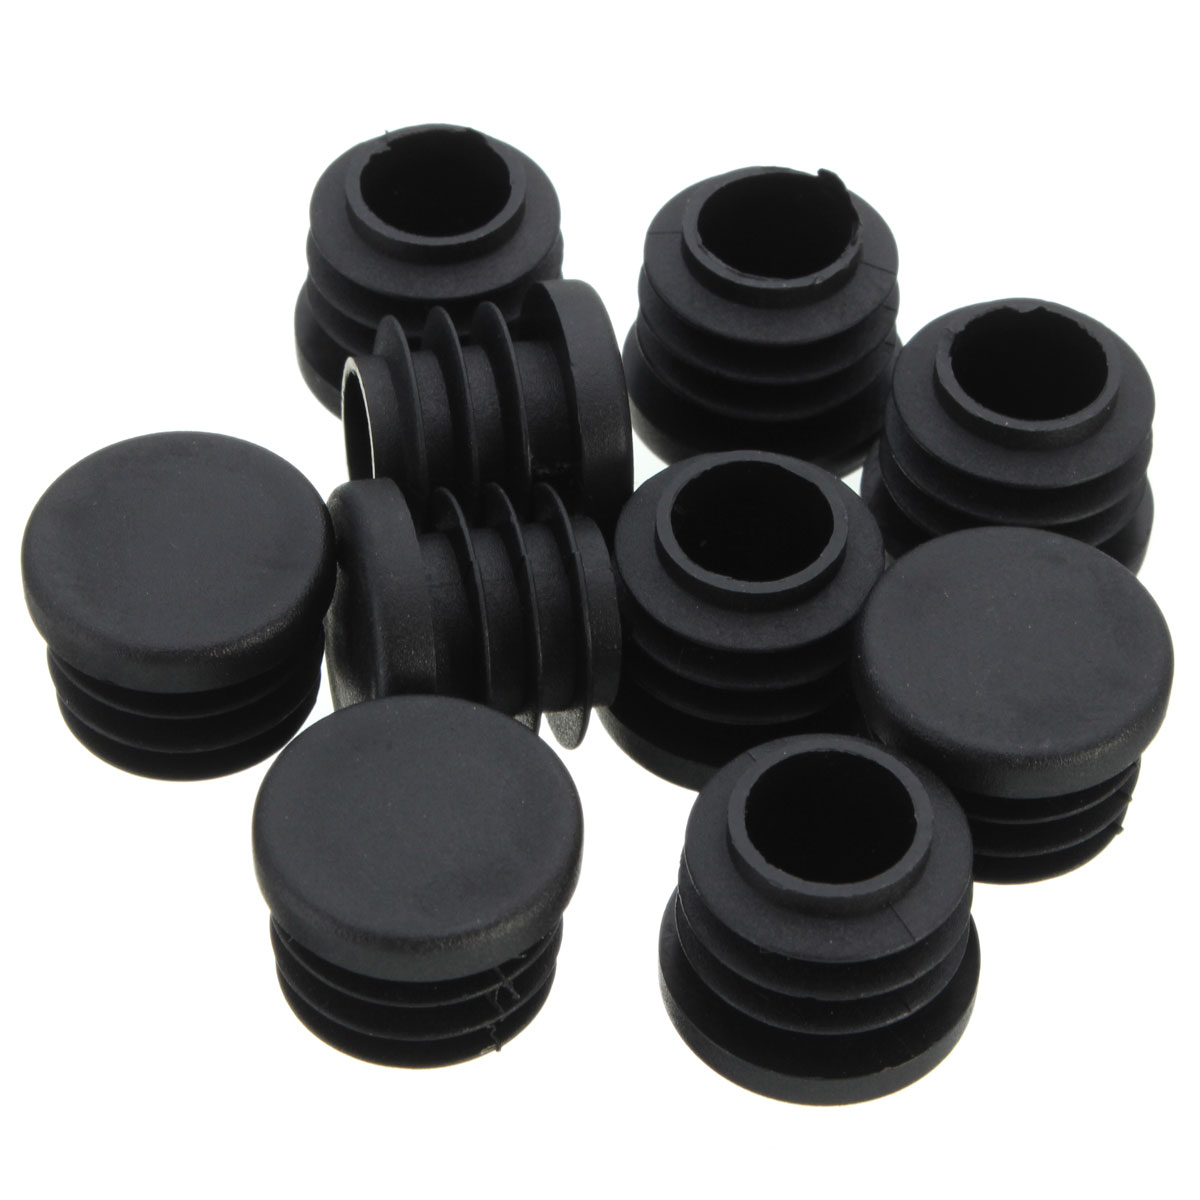 Black plastic blanking end caps cover insert plugs